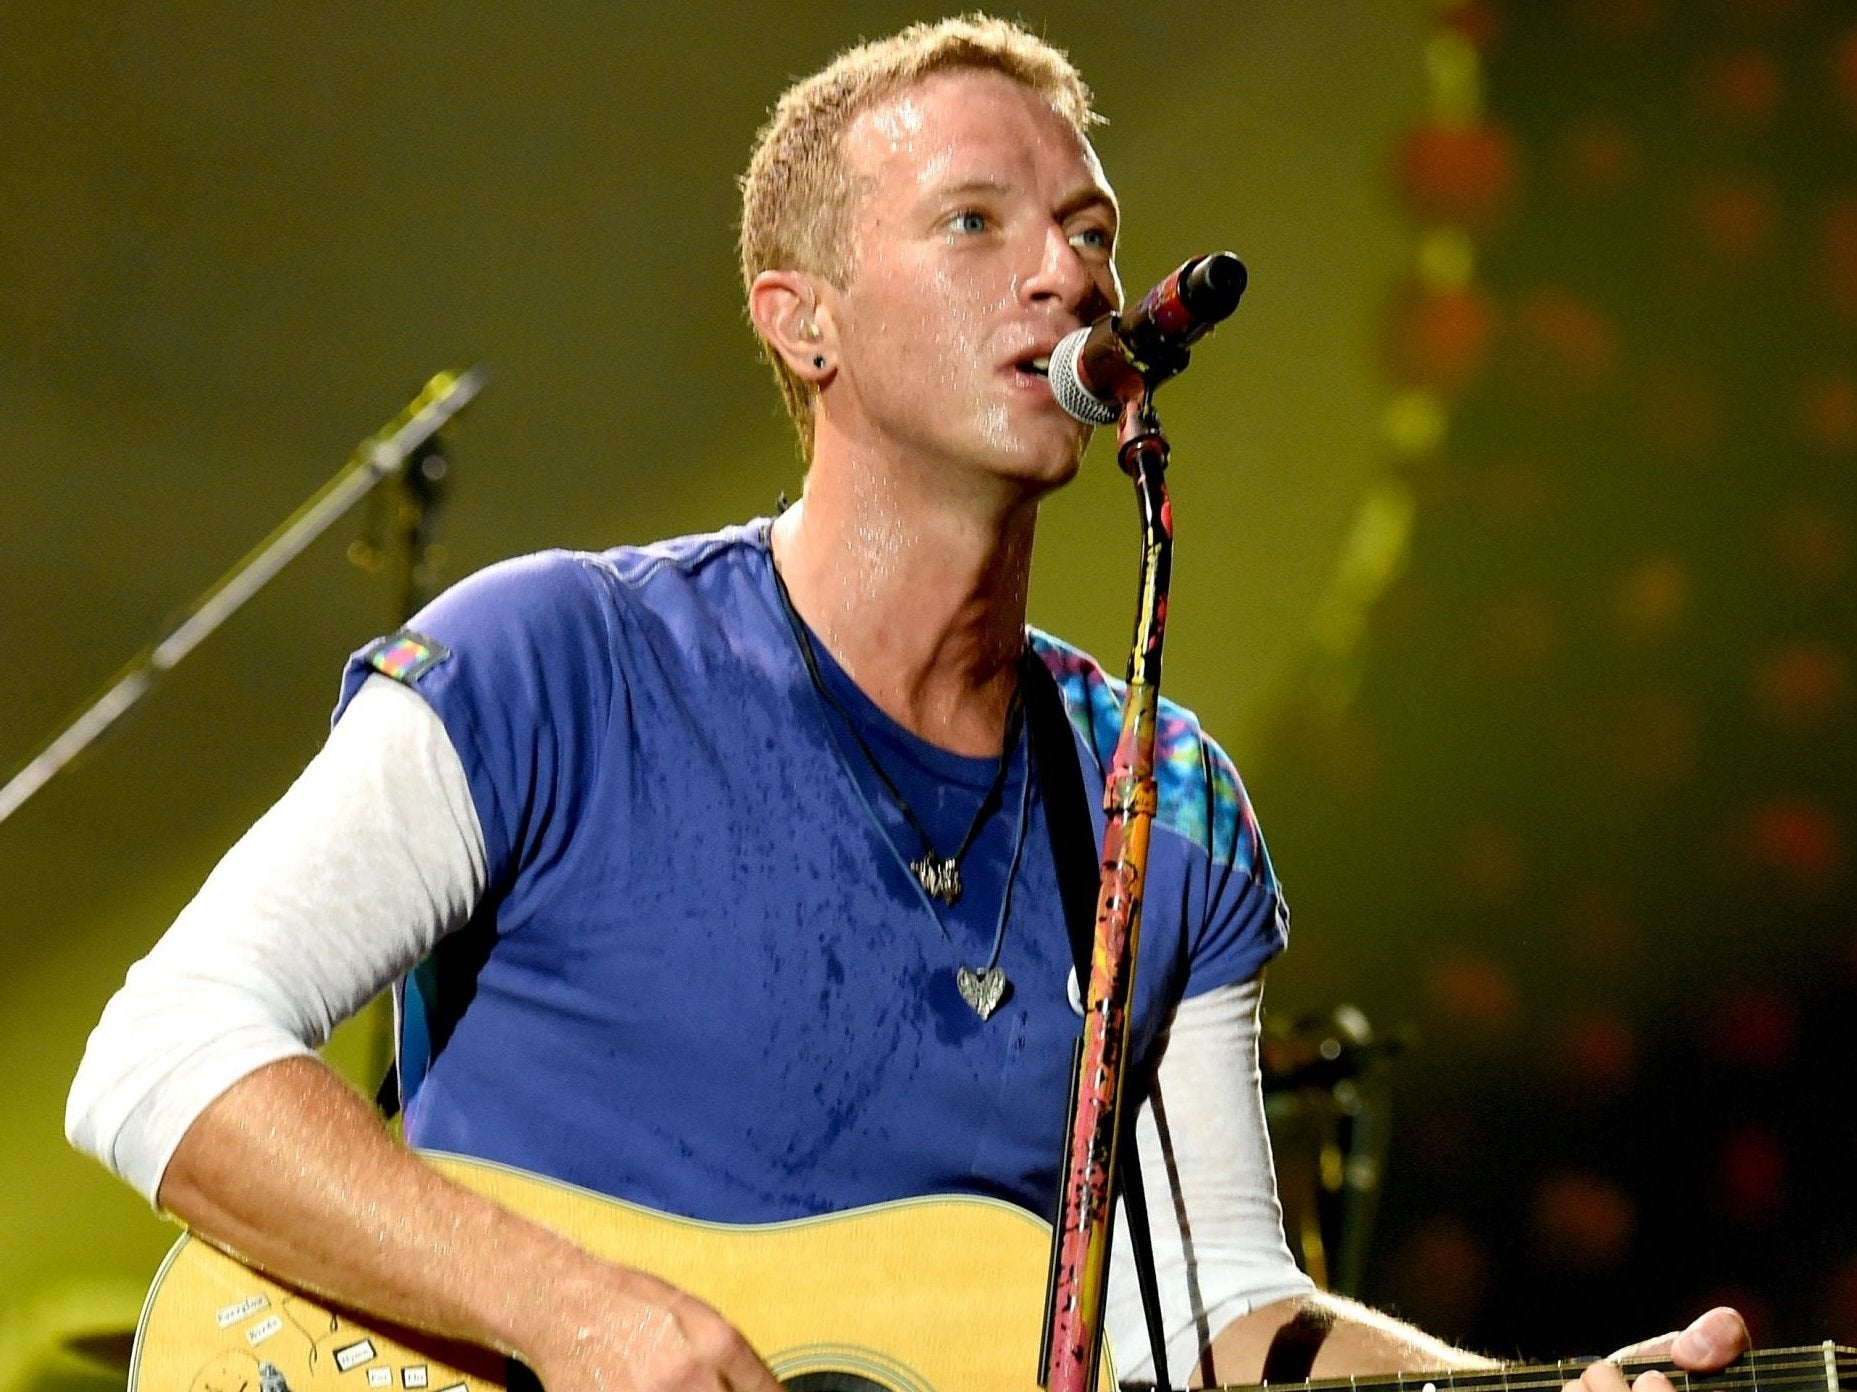 Coldplay's Chris Martin reportedly files restraining order against stalker who thinks they're in a relationship